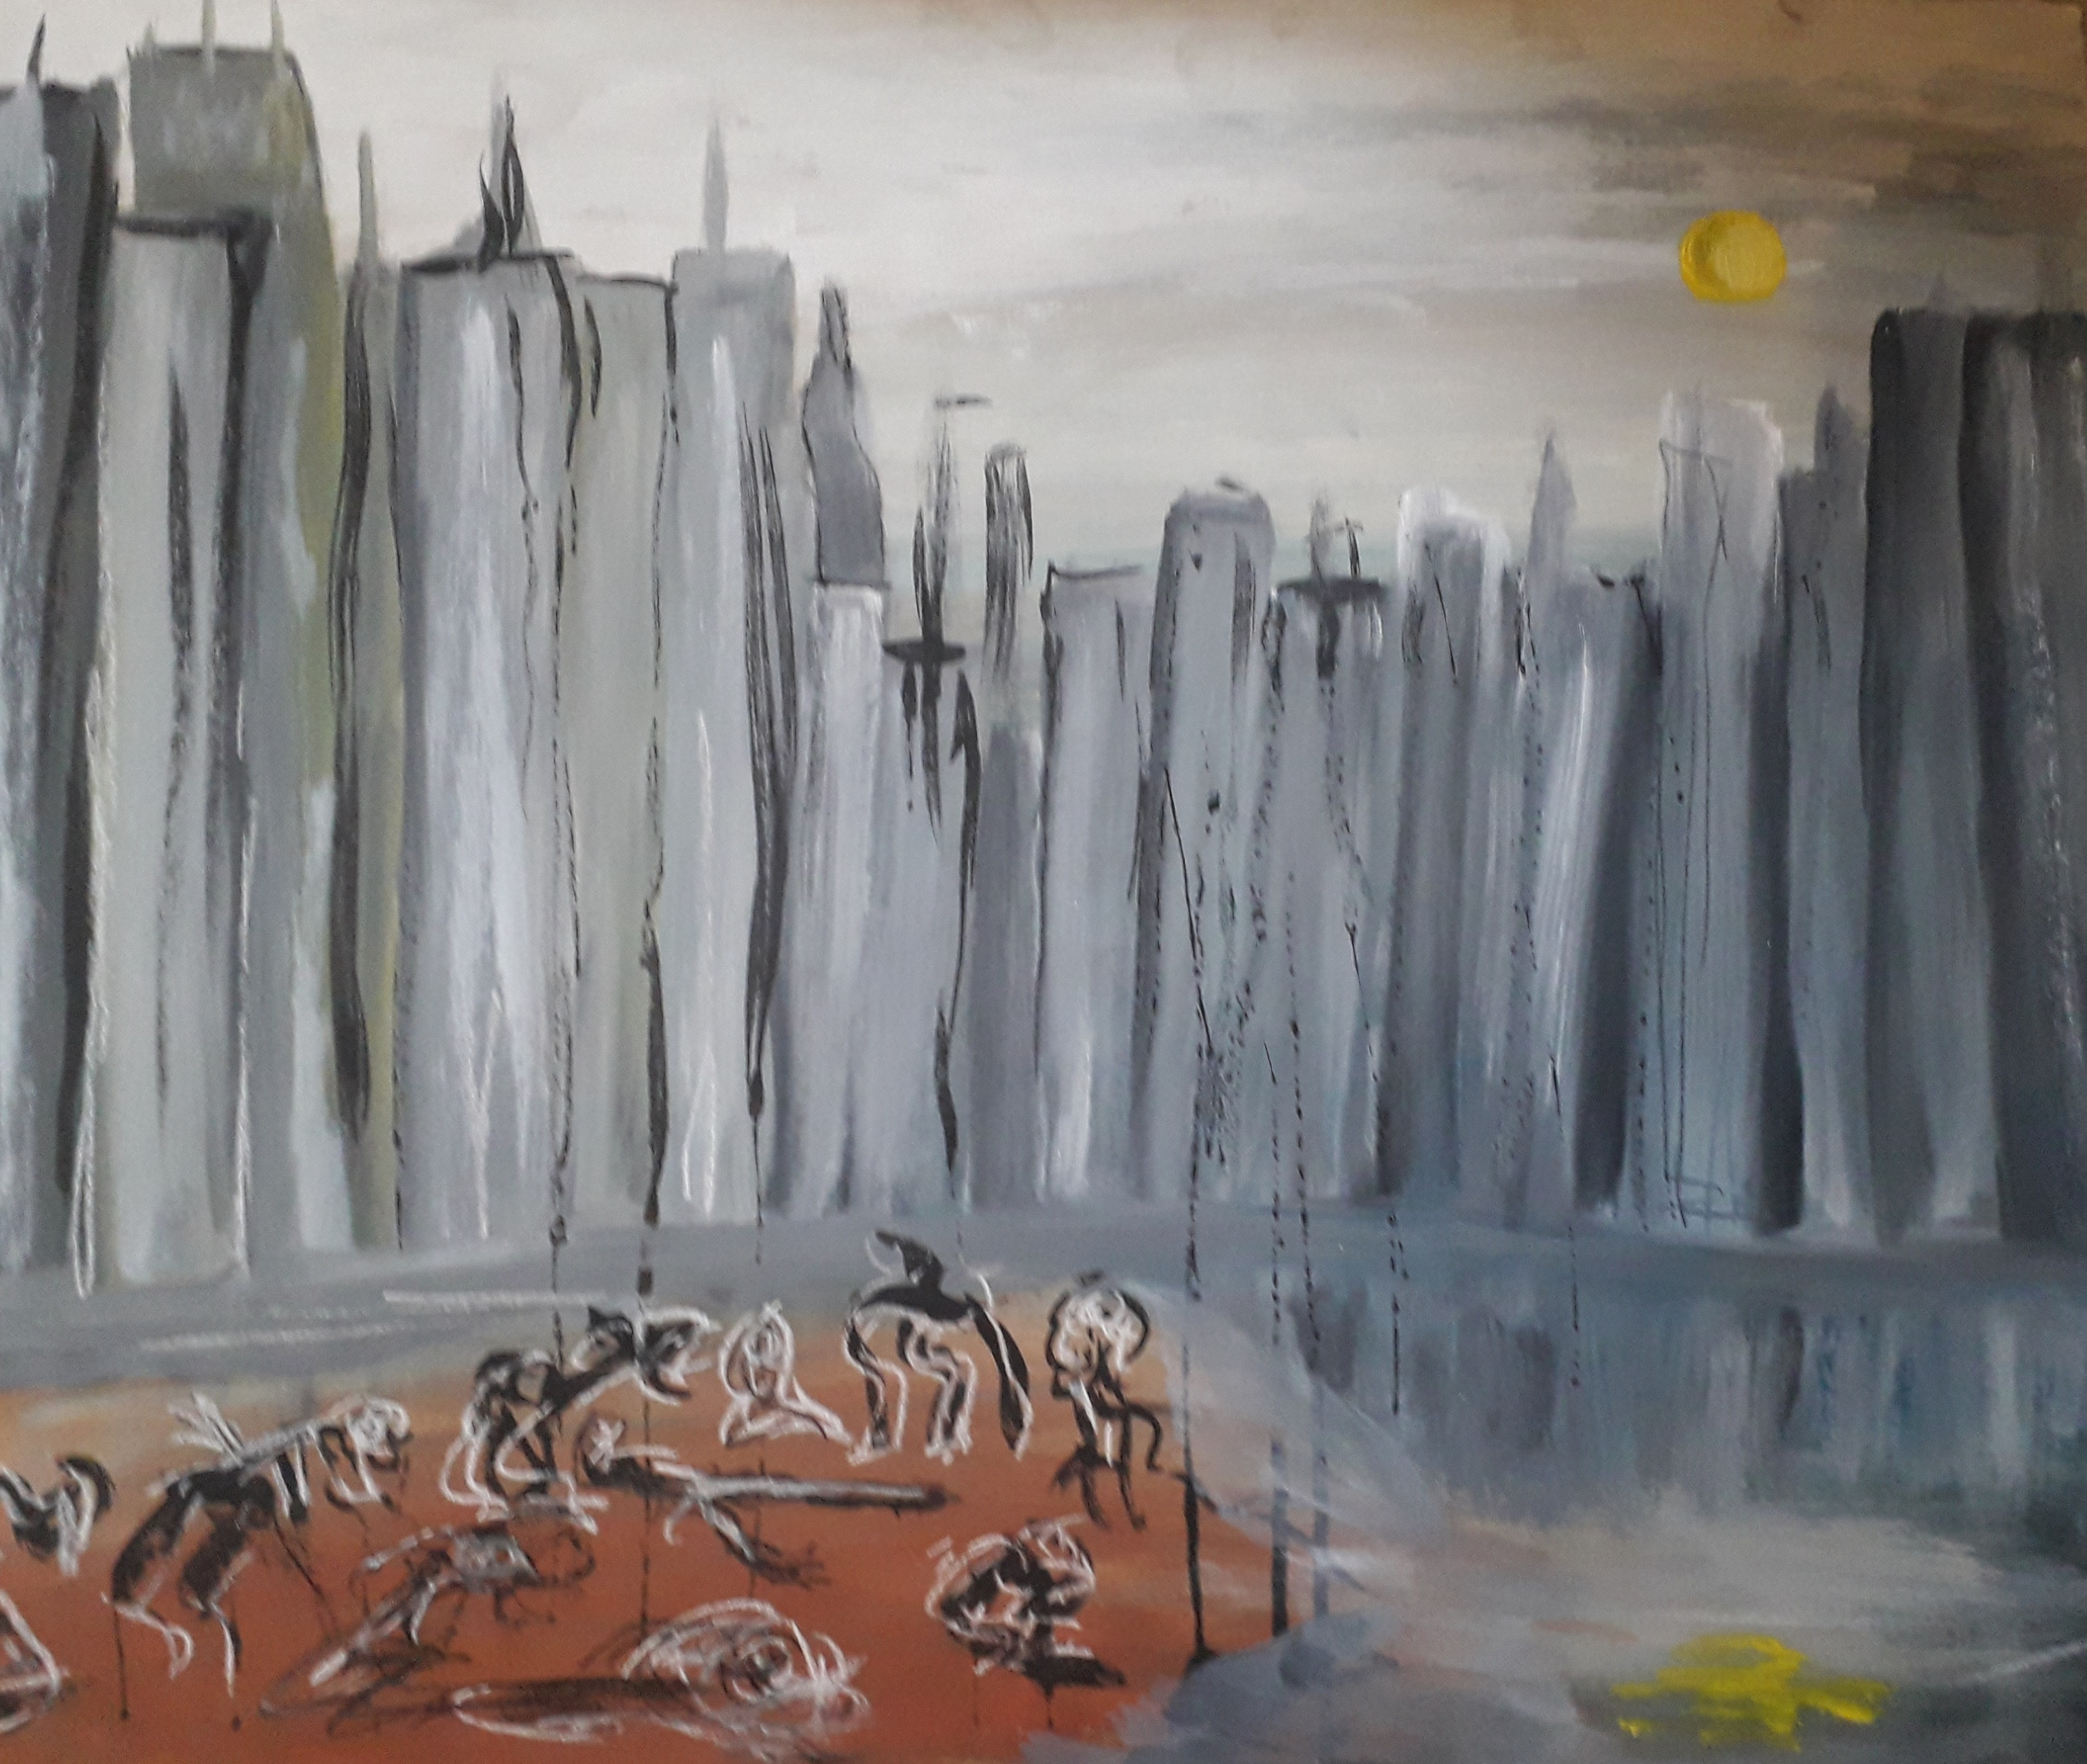 City Limit With Birds On The Beach - Oil, Ink and Charcoal on board - 21.25×25.5 -£20.00